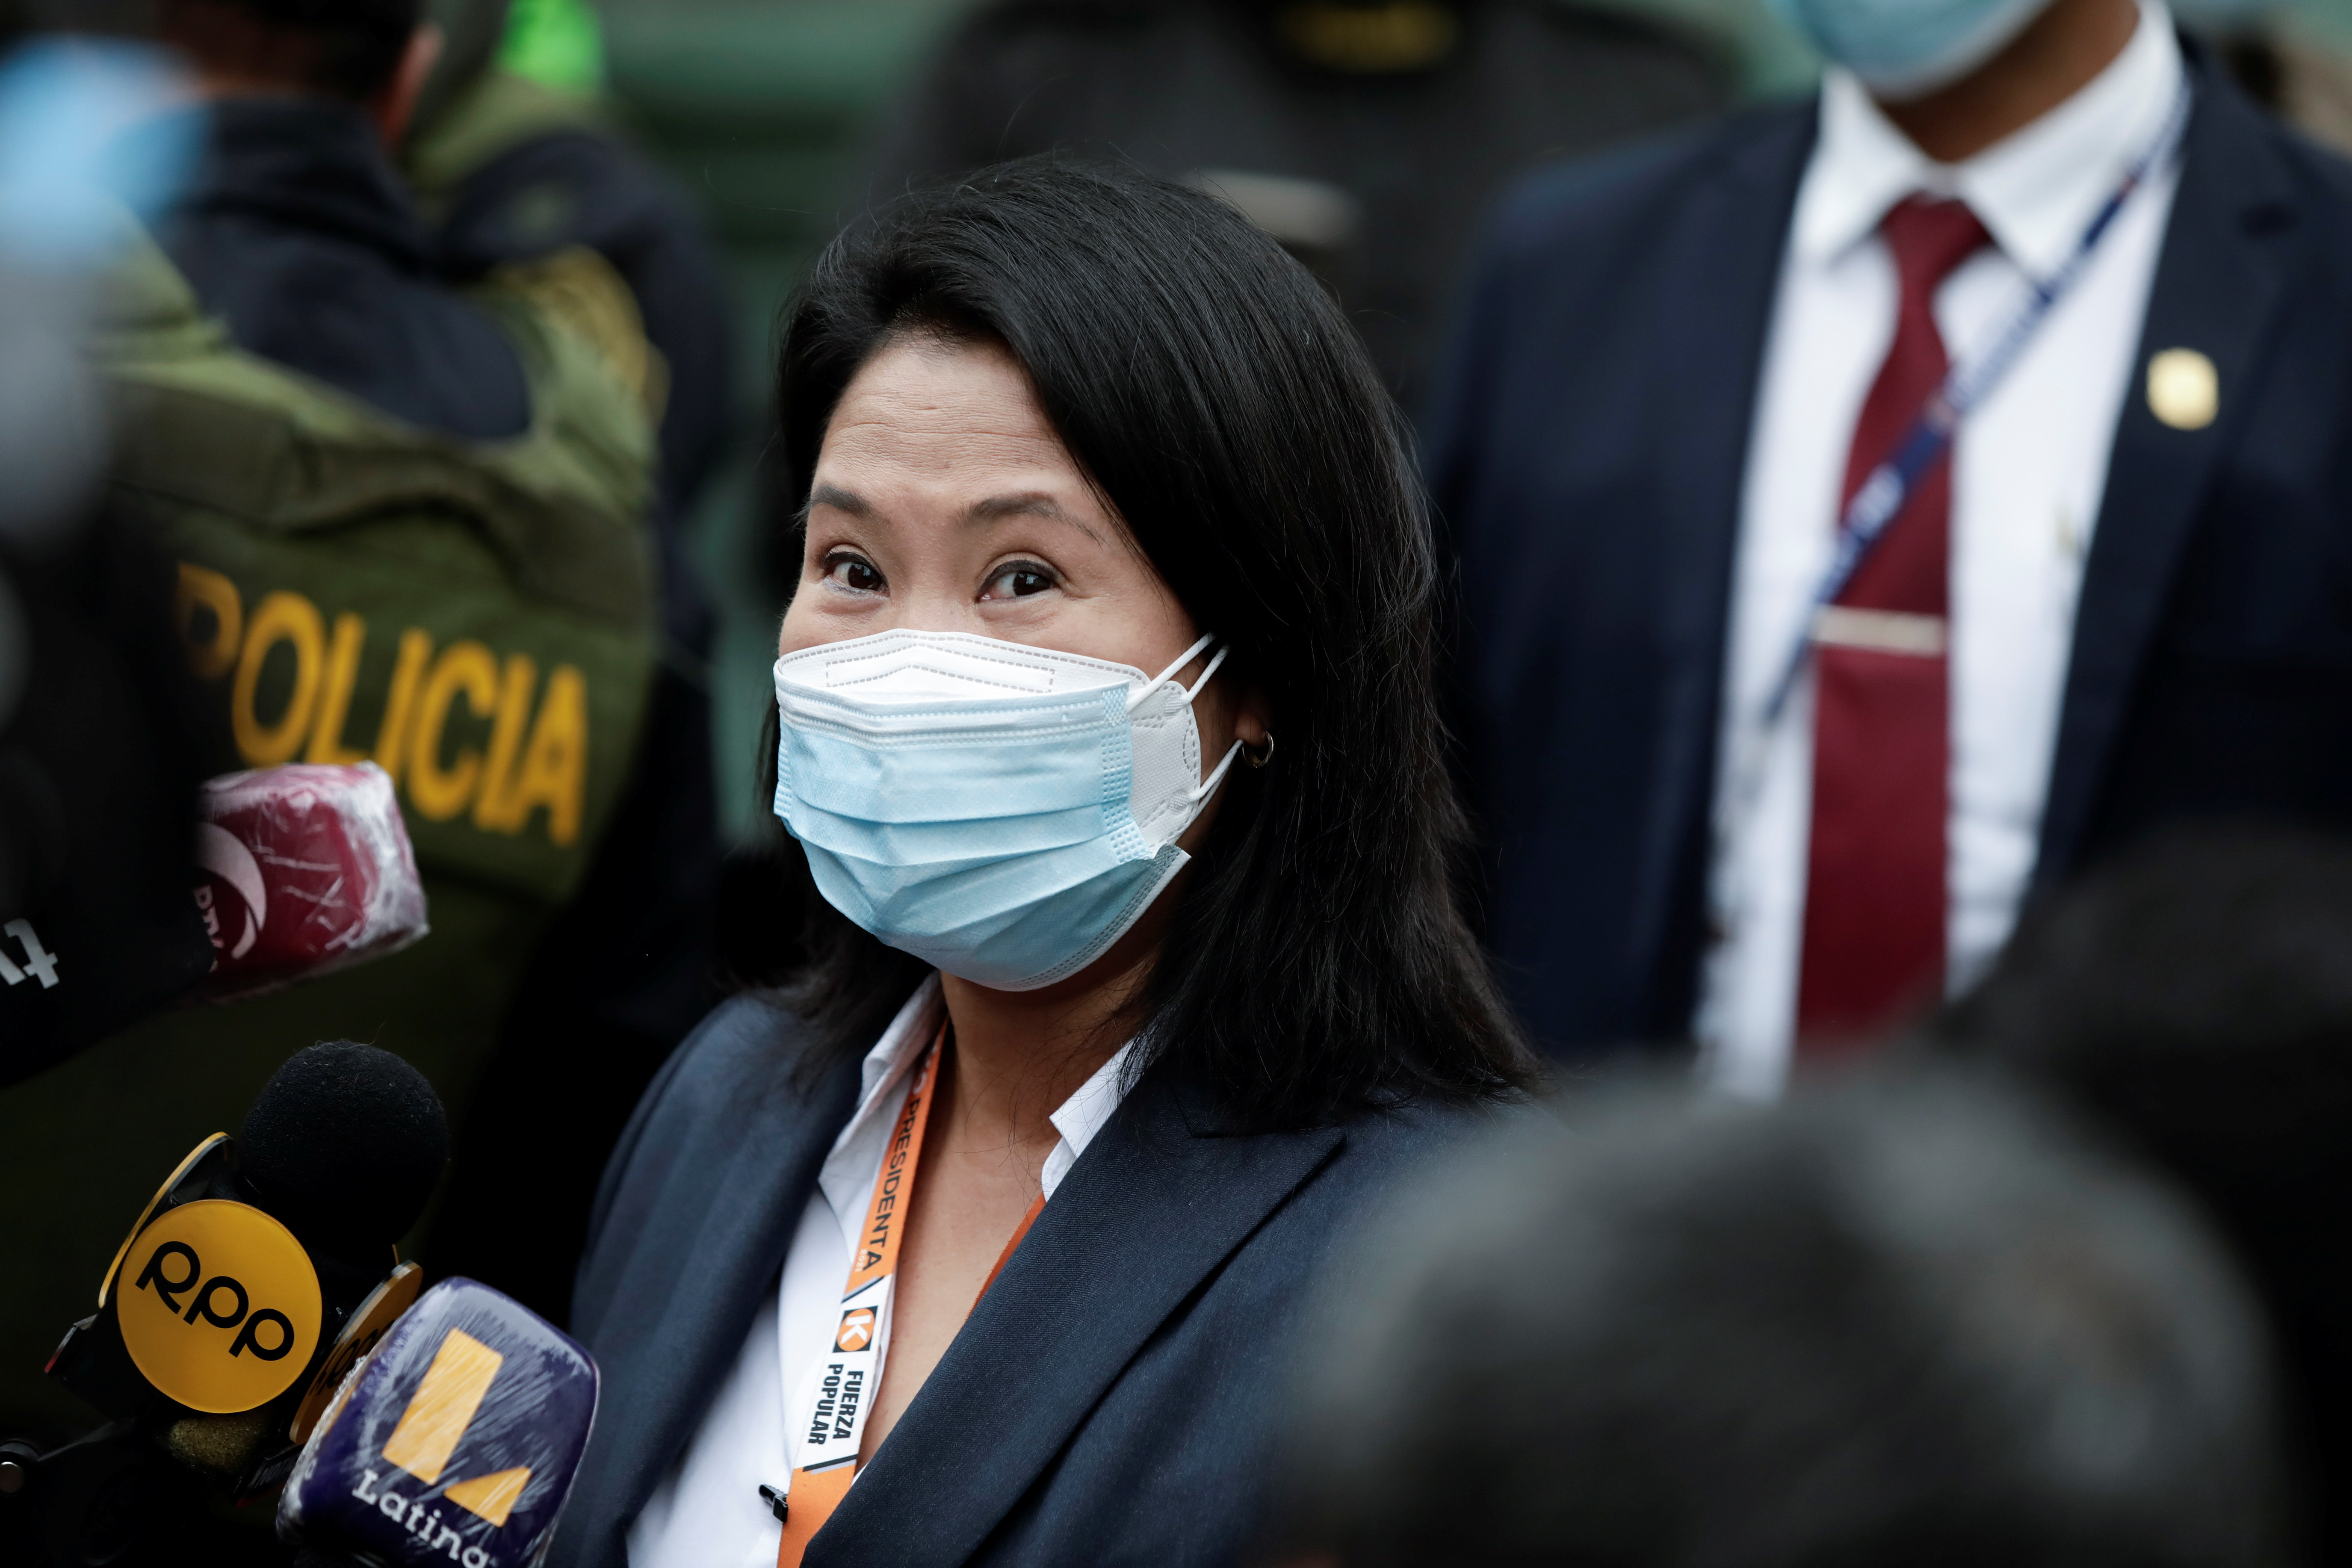 Peru's presidential candidate Keiko Fujimori talks with journalists as she arrives at the National Court of Tacna Avenue in Lima, Peru, June 21, 2021. REUTERS/Angela Ponce